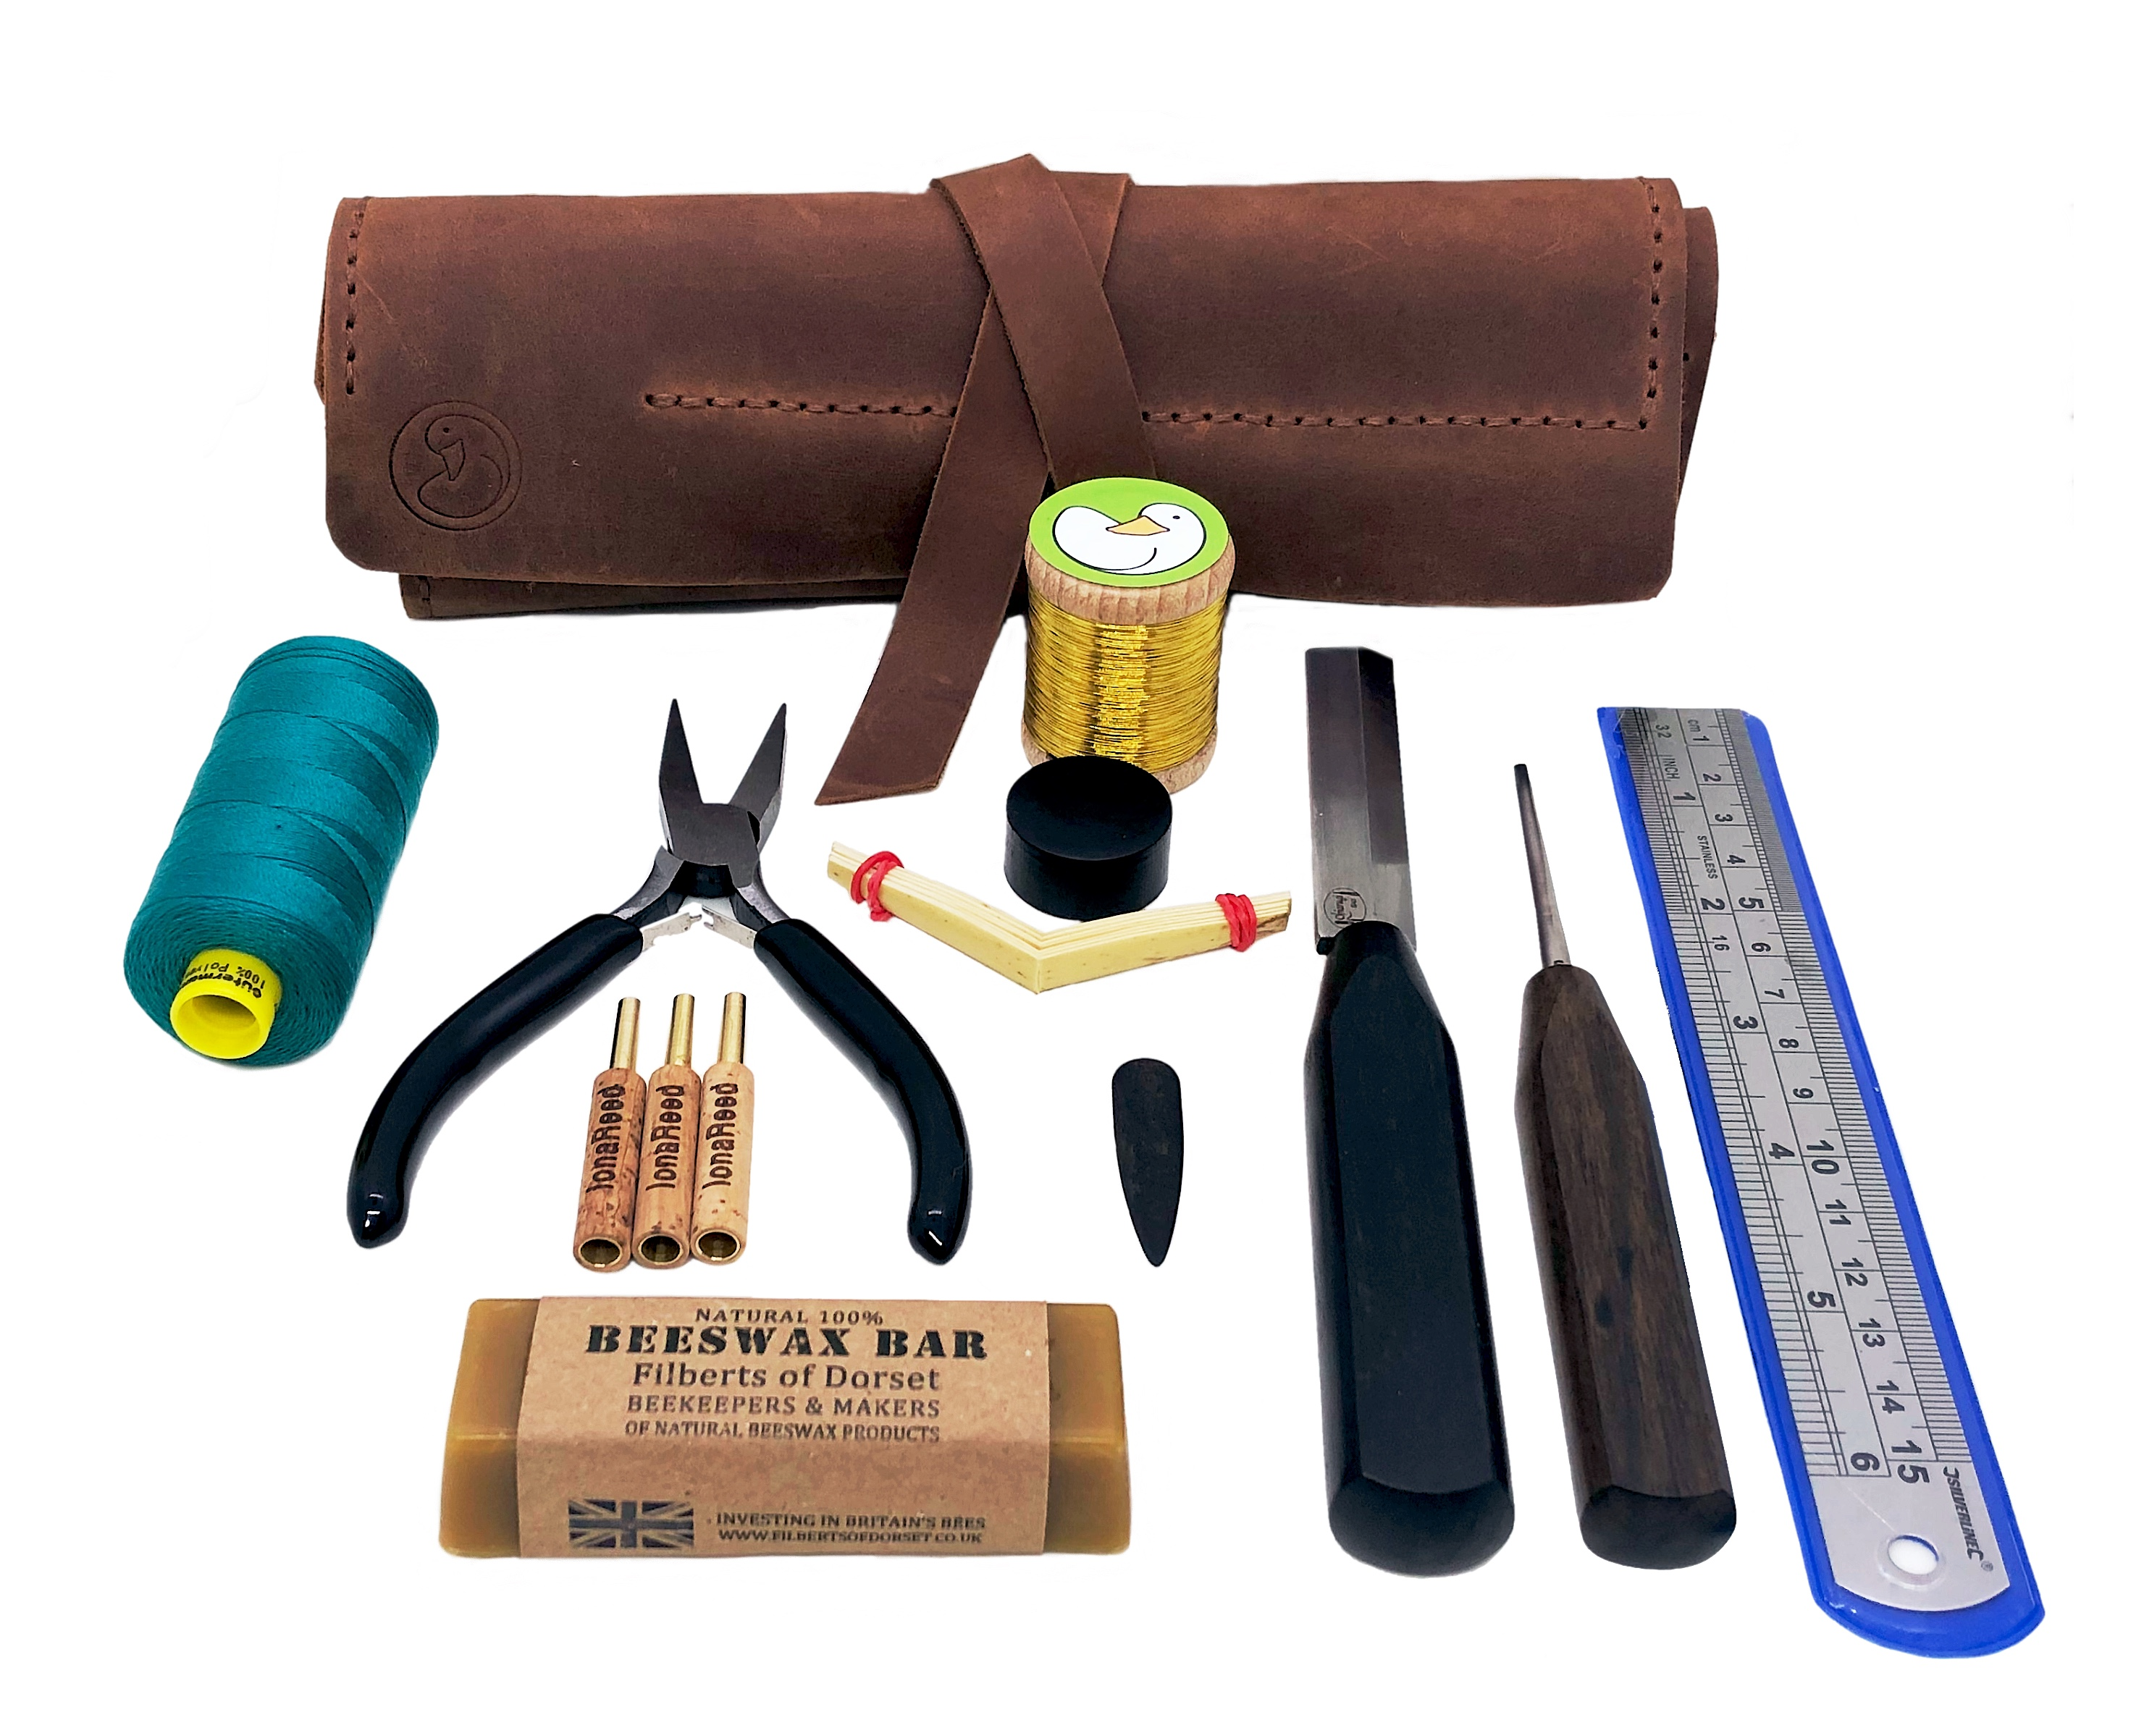 Oboe Luxury Reed Making Kit Contents